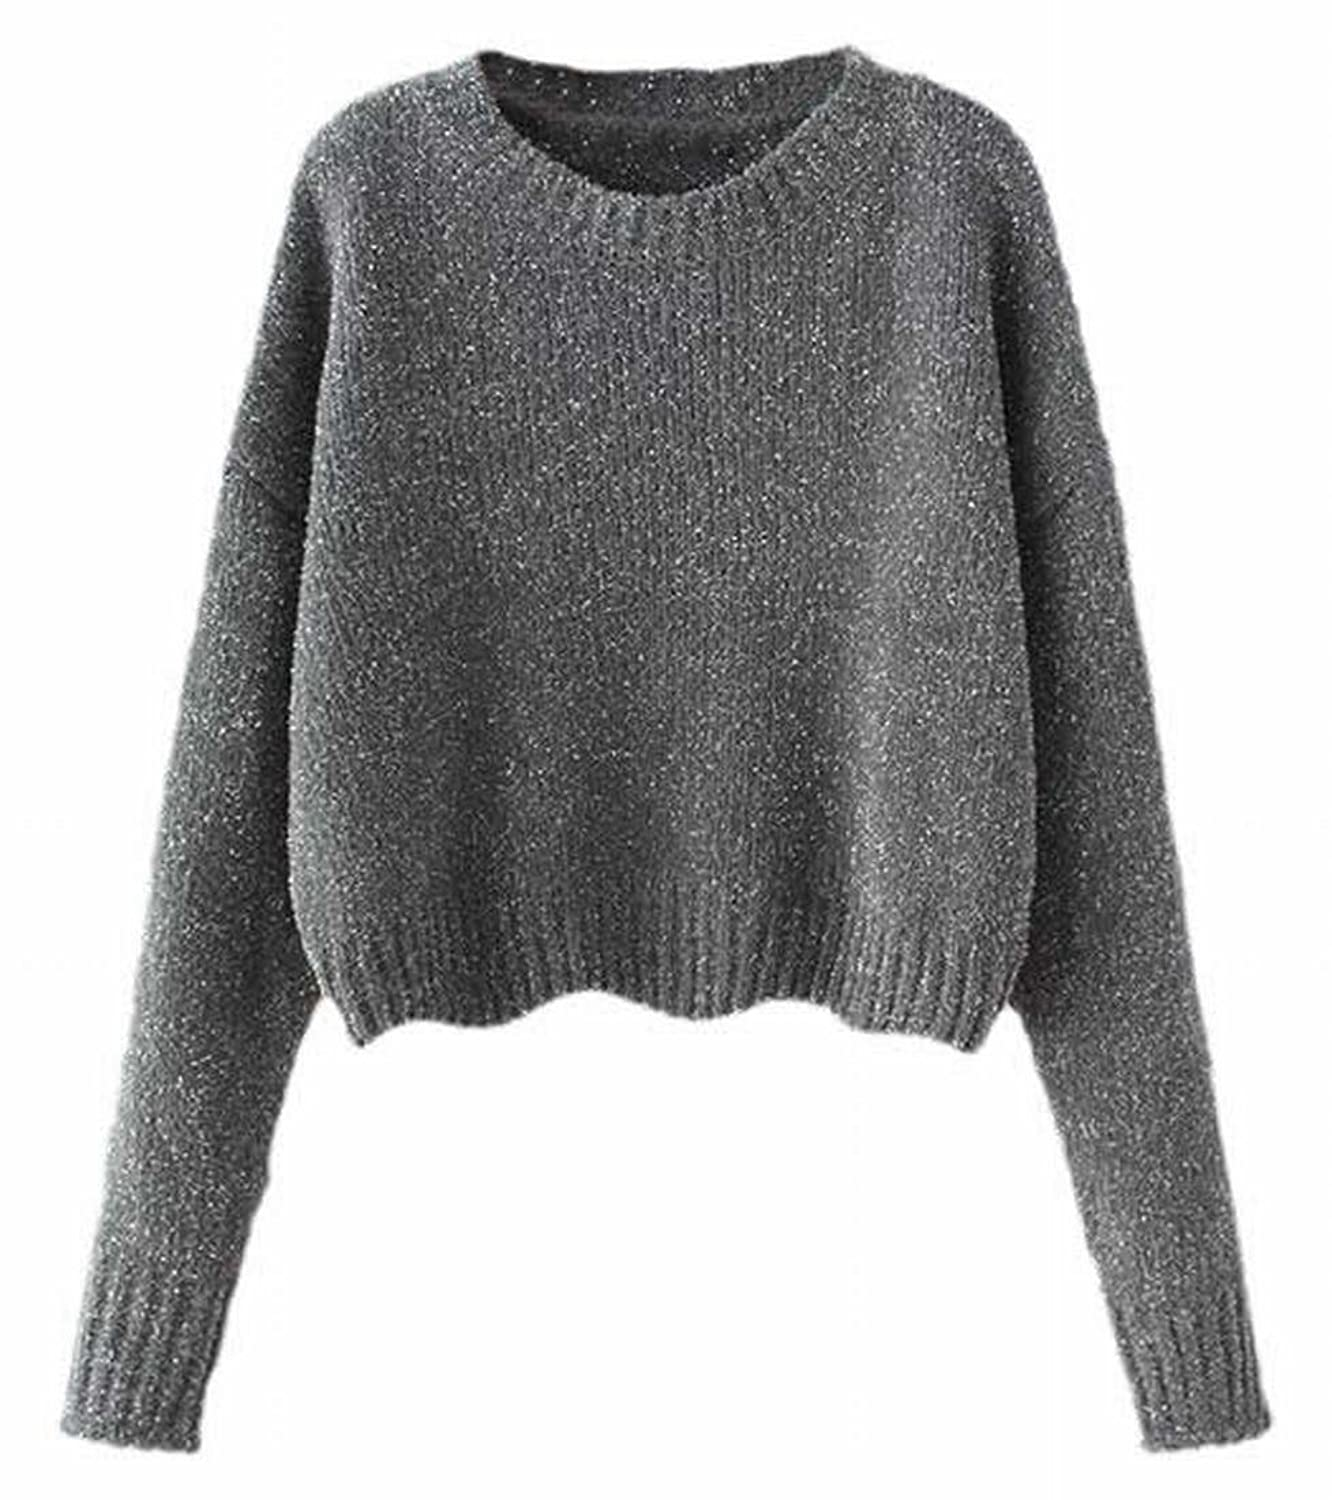 ARRIVE GUIDE Womens Classic Short Round-neck Loose Pullover Sweaters